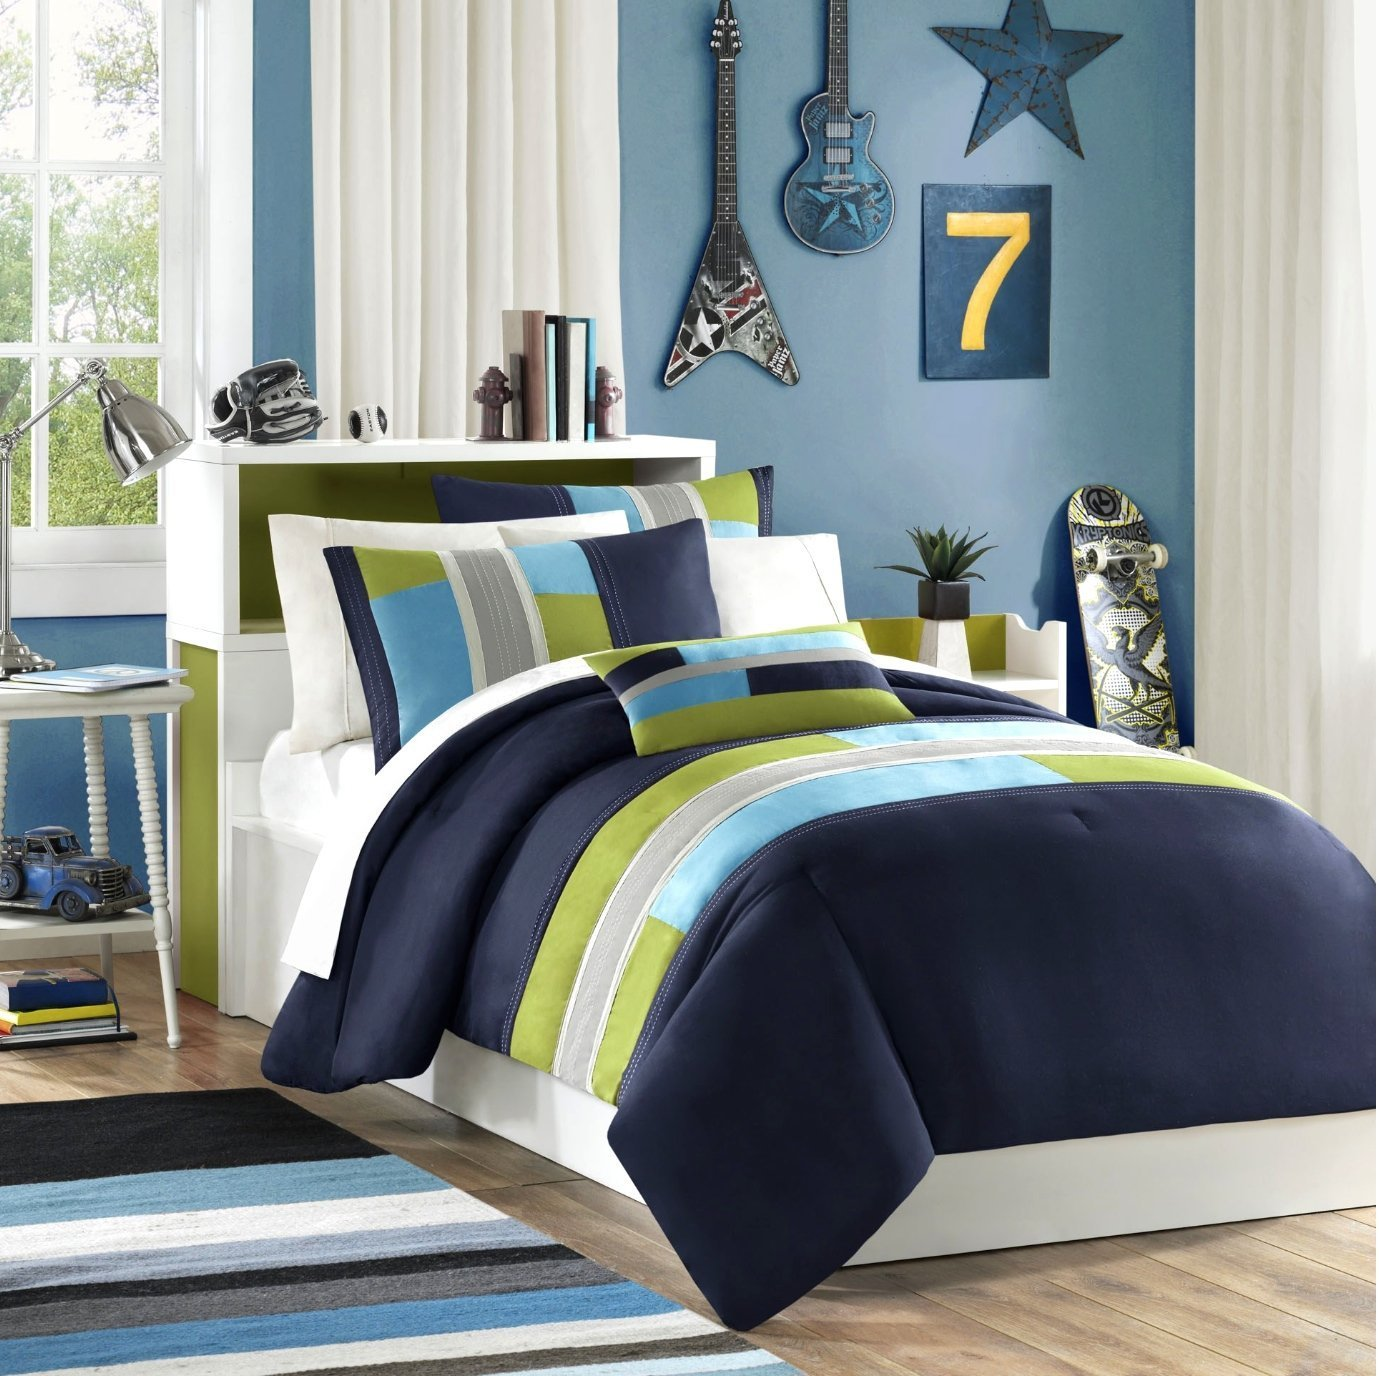 Navy, Teal, Light Green Boys Twin Comforter and Sham Set Plus